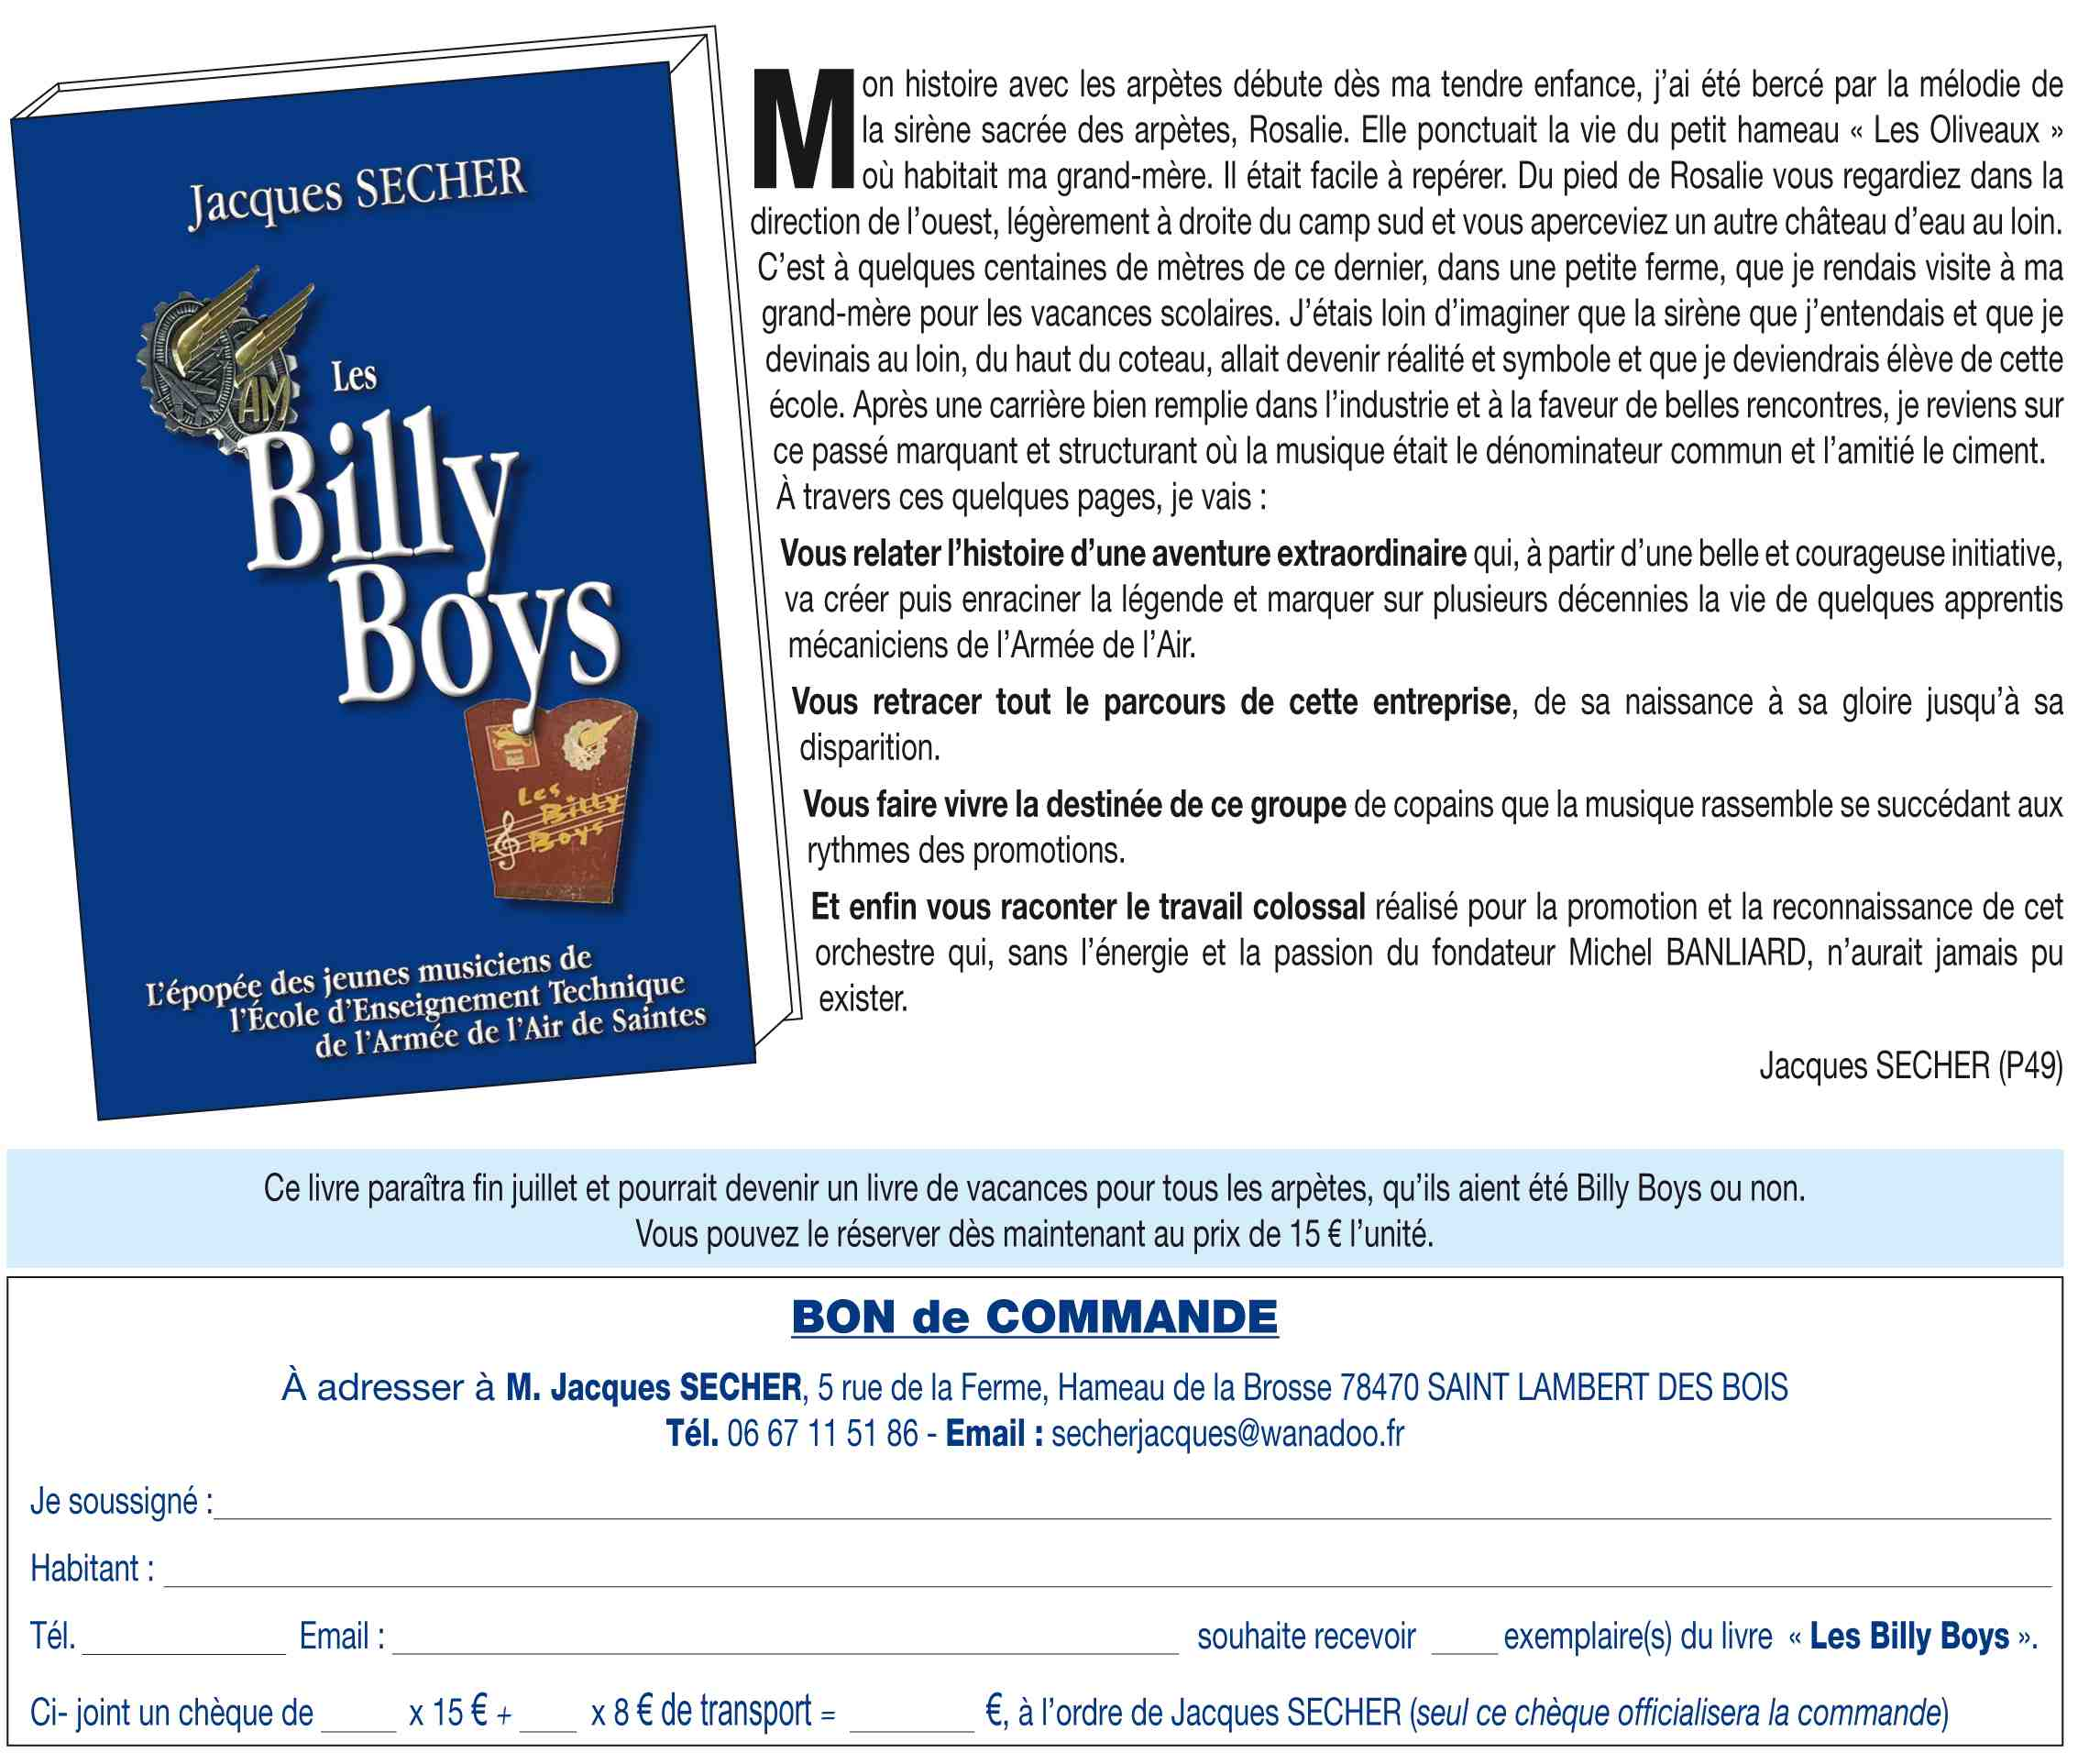 LES BILLY BOYS REVIENNENT SUR SCENE 2